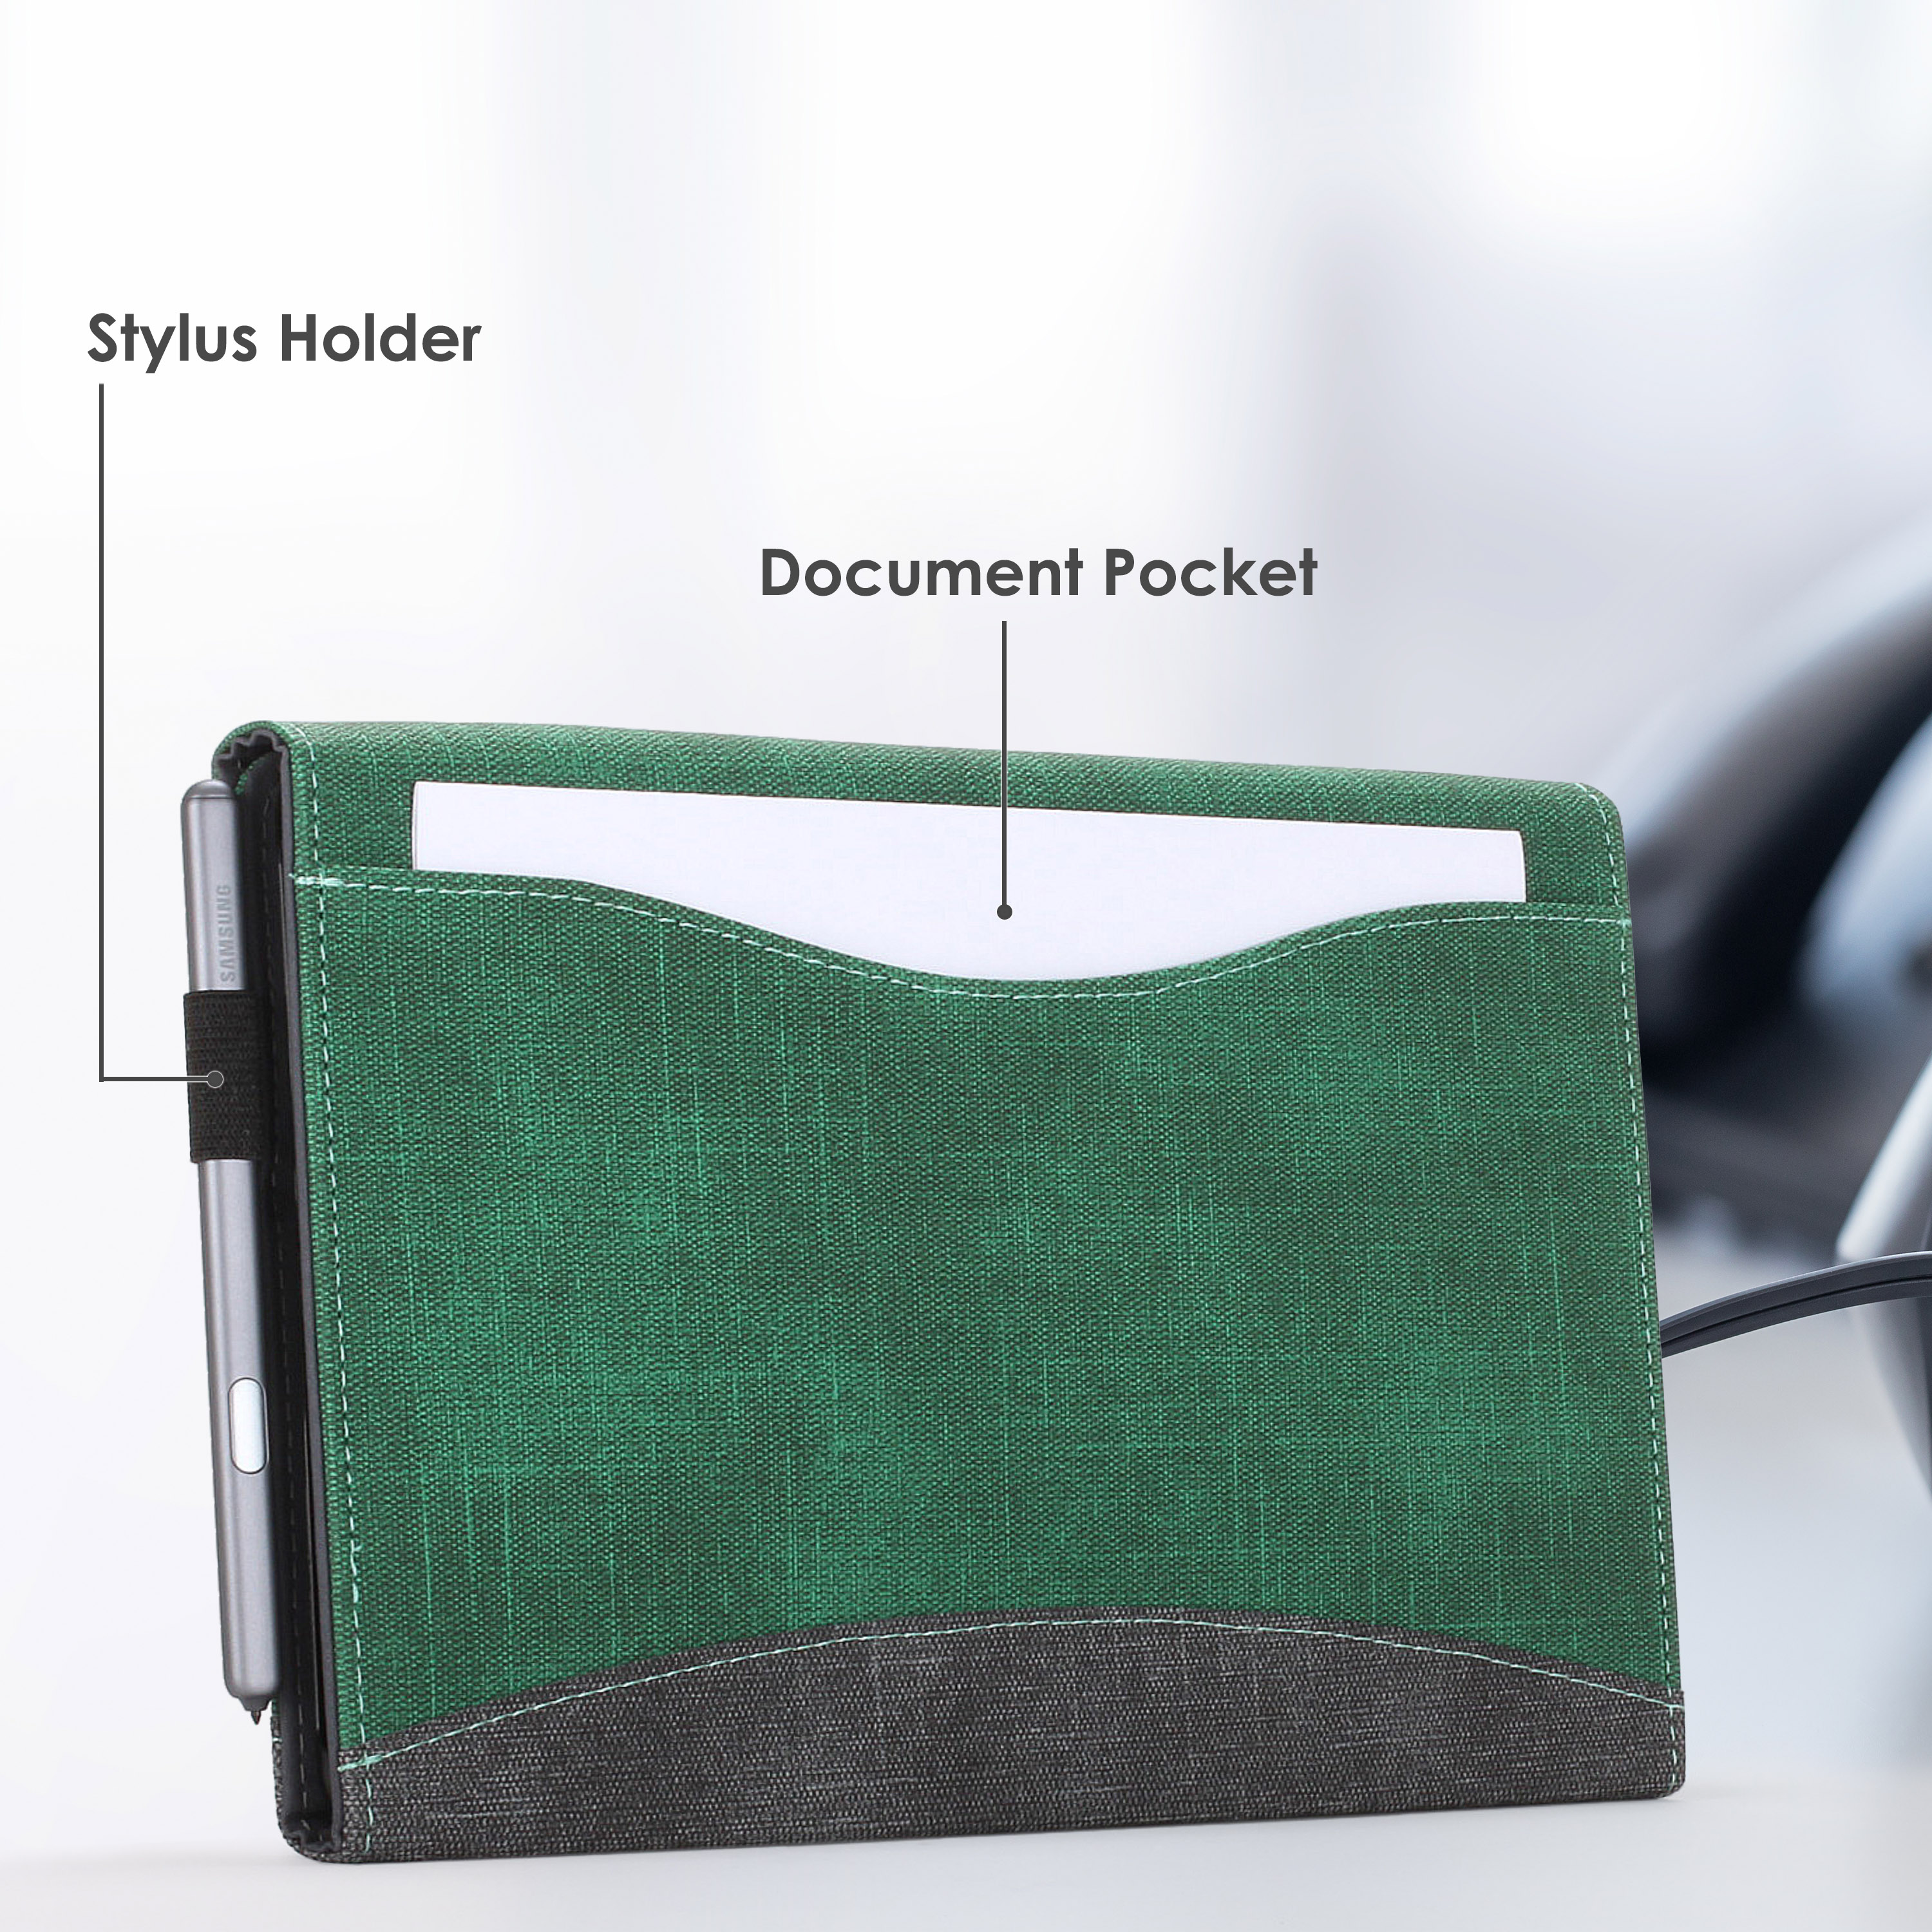 Samsung-Galaxy-Tab-S6-10-5-Case-Cover-Stand-with-Document-Pocket-Stylus thumbnail 15